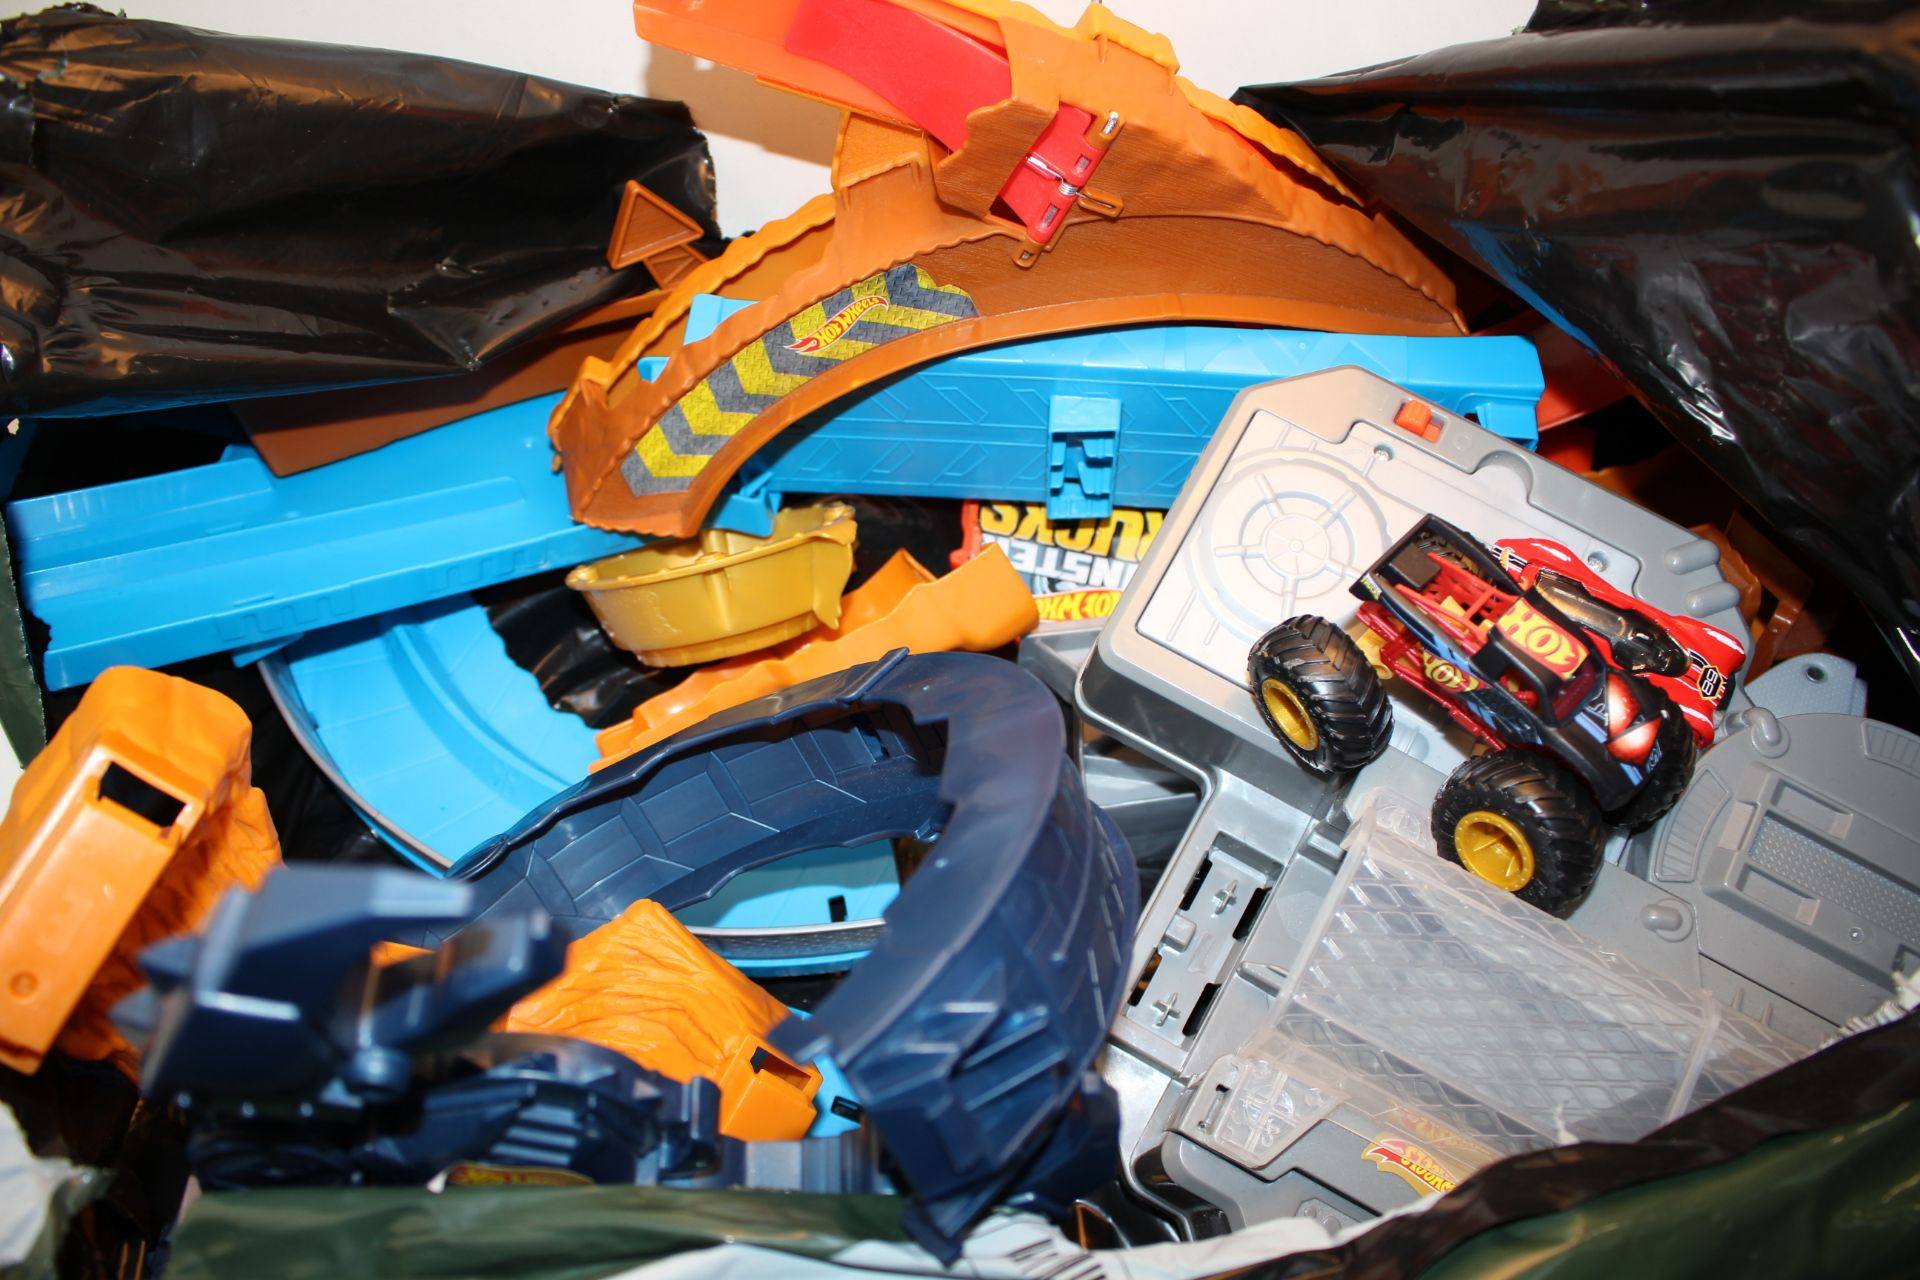 UNBOXED HOT WHEELS TRACK AND CARS Condition ReportAppraisal Available on Request- All Items are